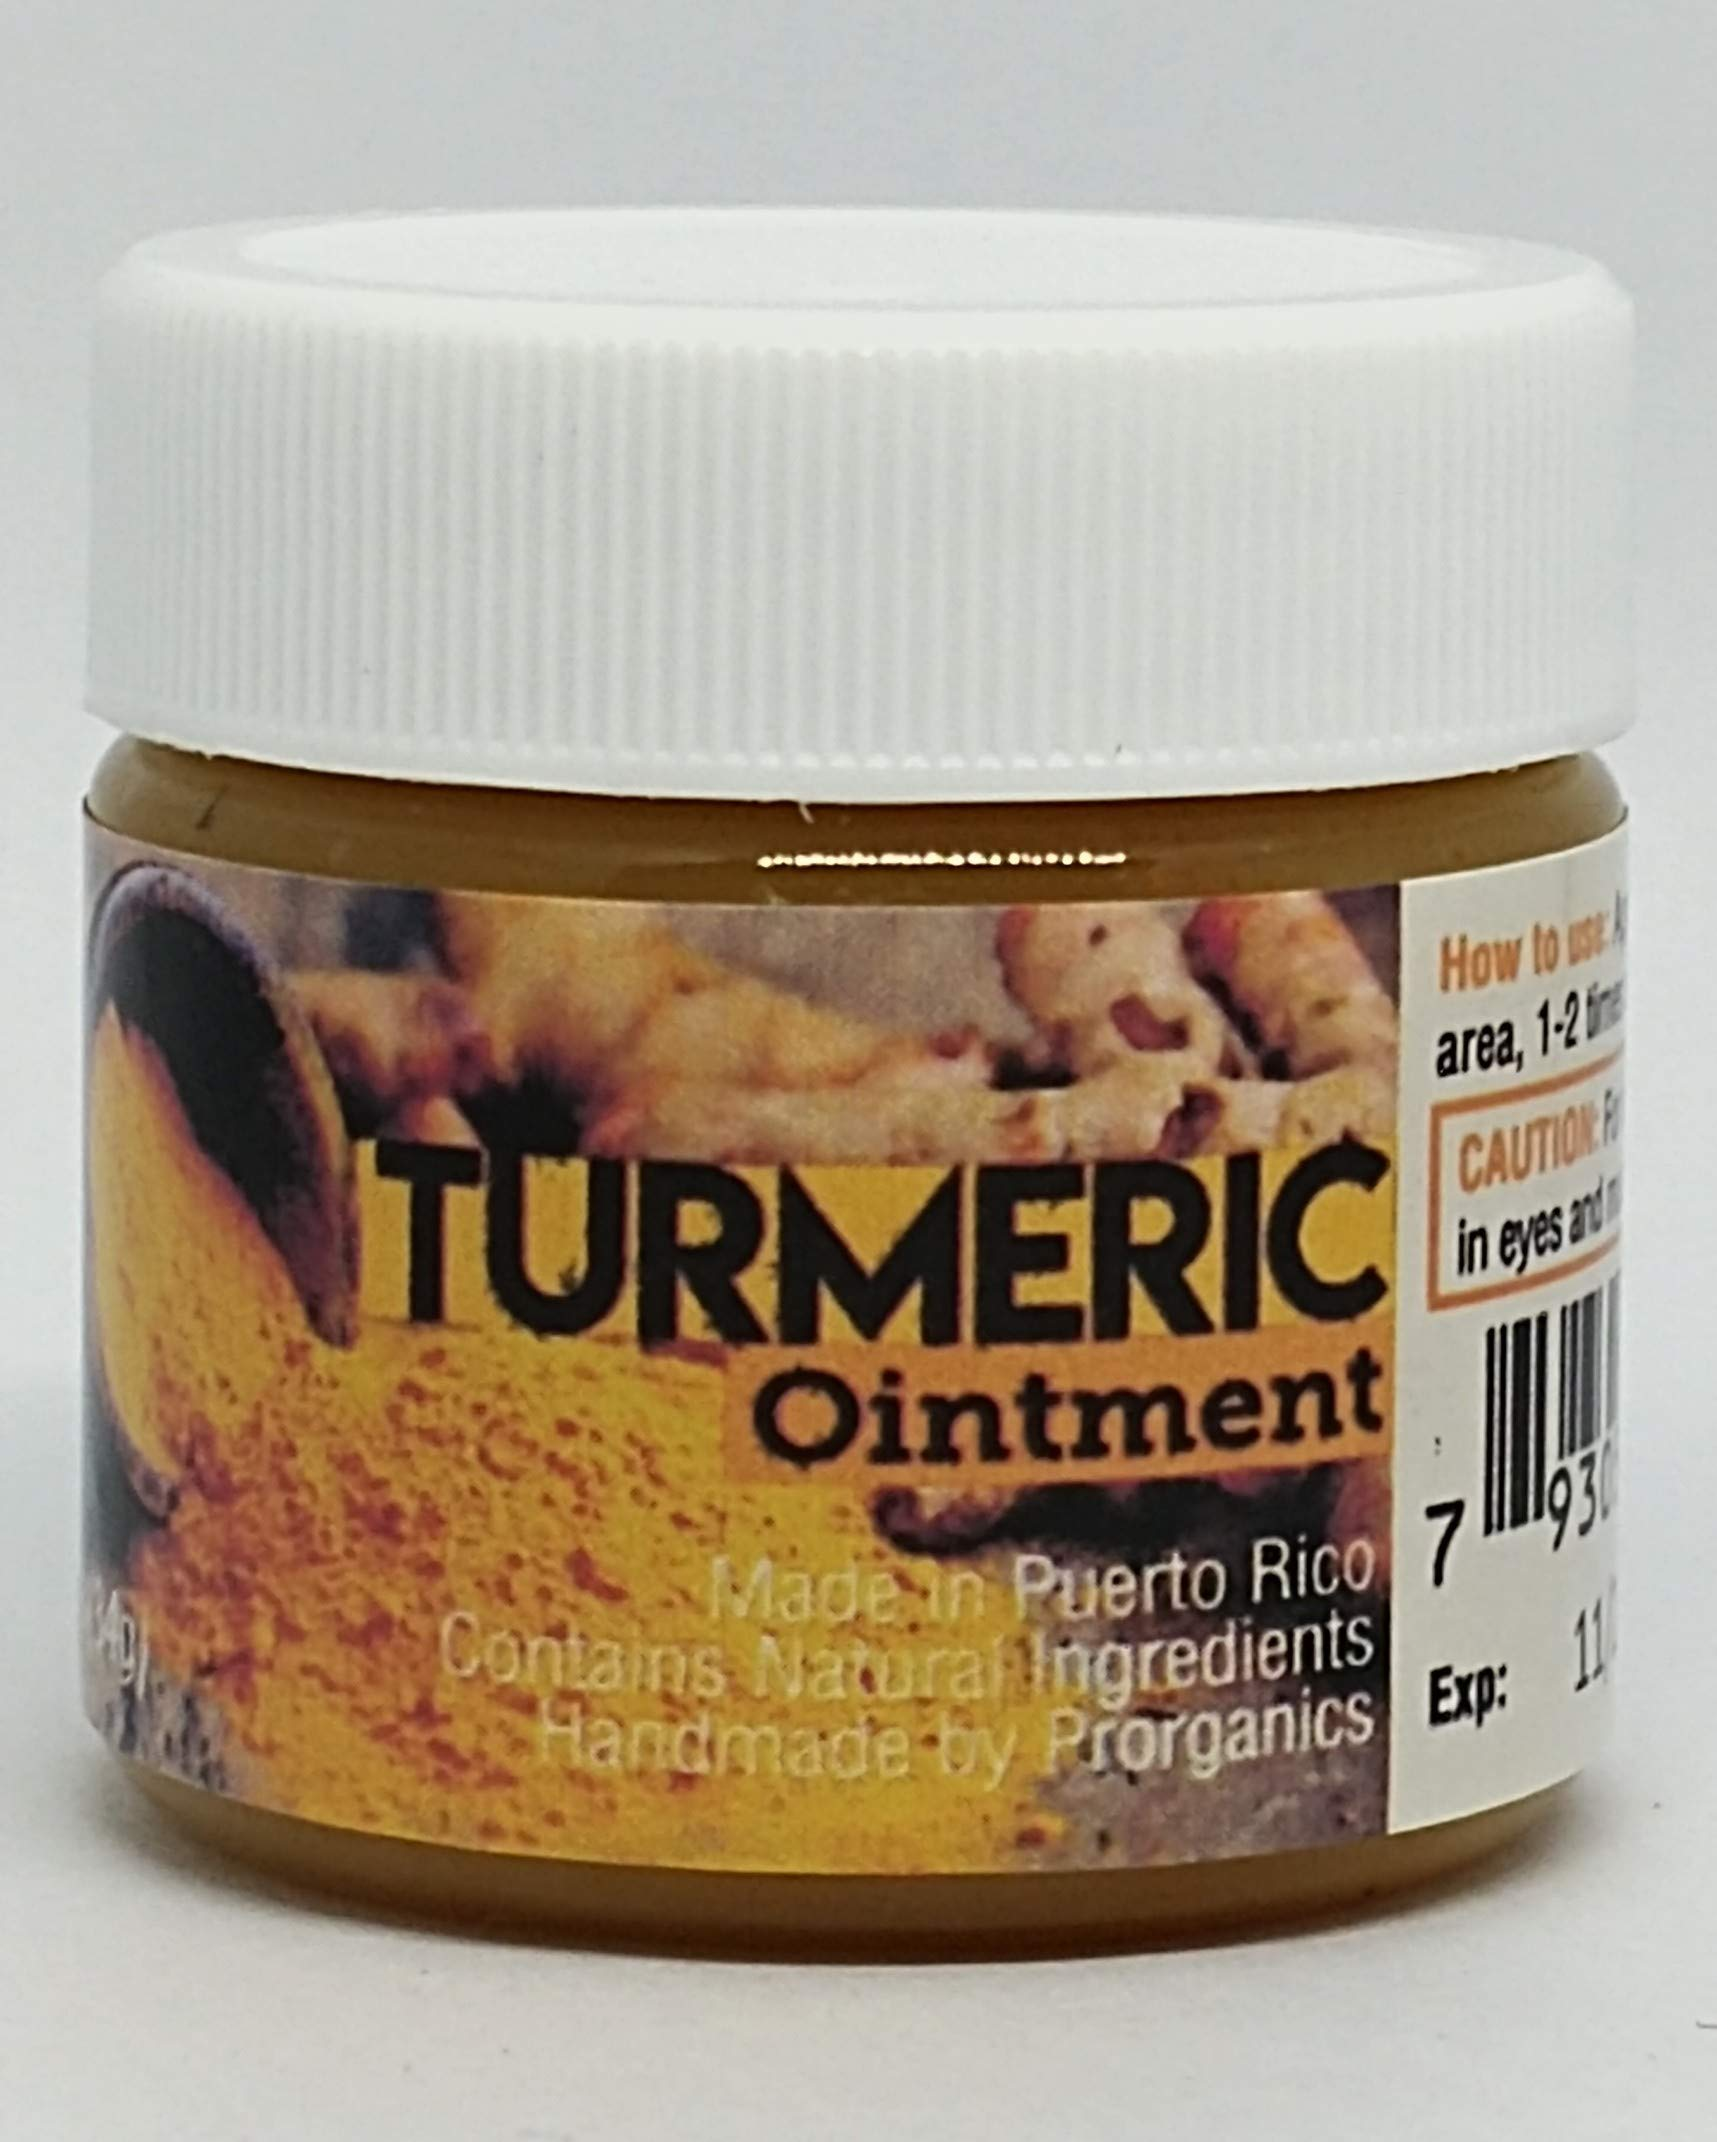 Prorganics Turmeric Ointment 1.2oz (for Resellers) Spanish and English Version Available.